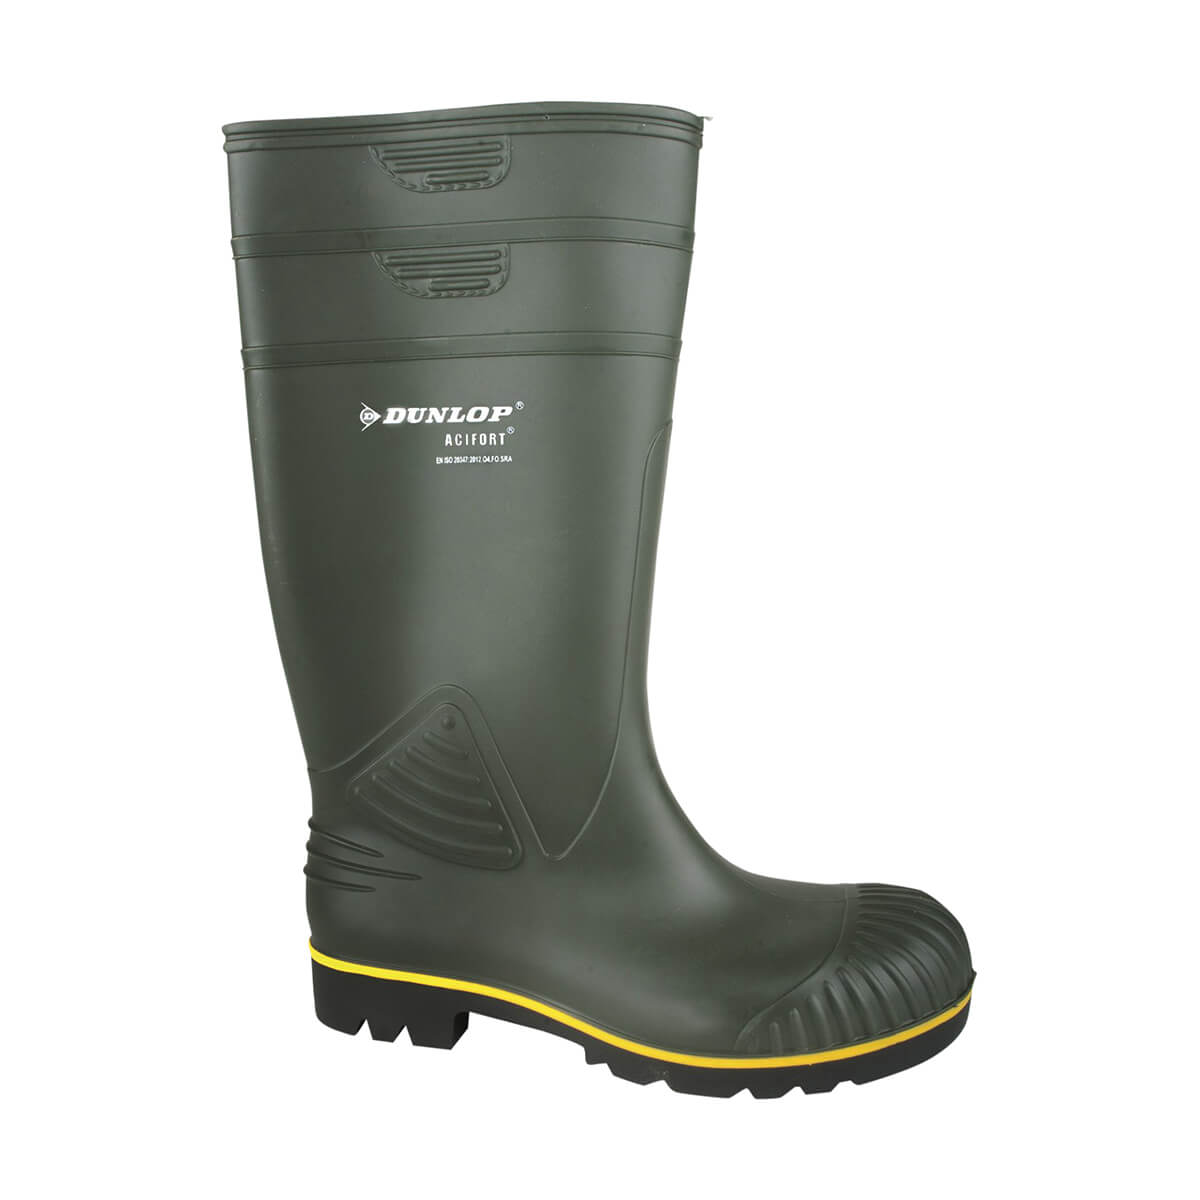 Actifort Heavy Duty Agricultural Rain Boots